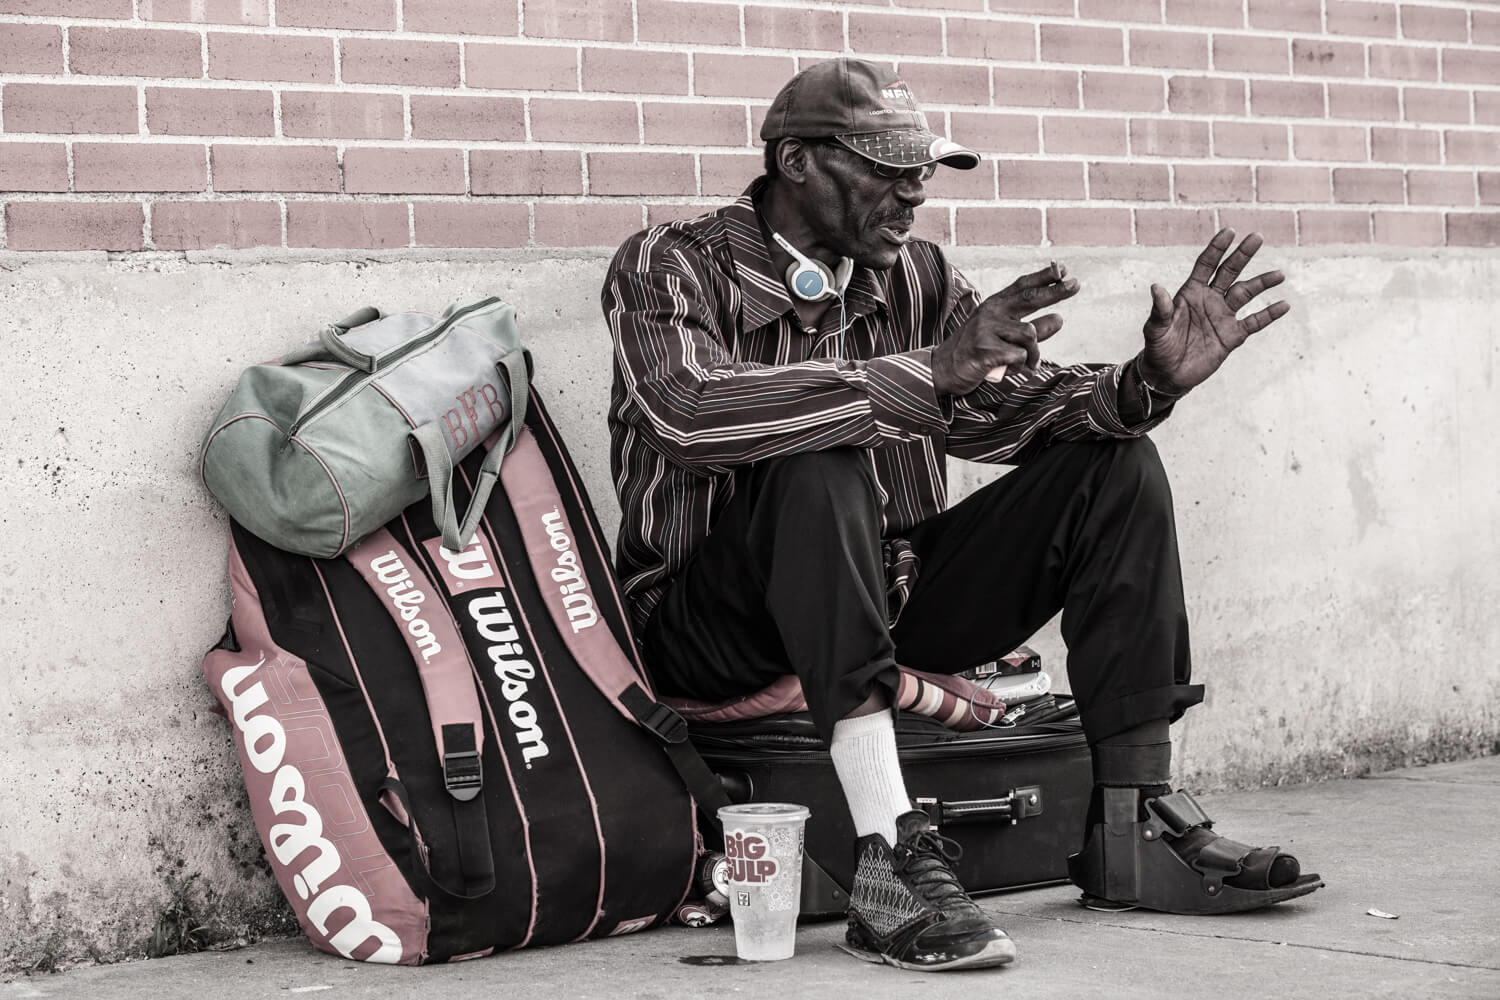 Only Temporary - Homeless in Dallas: Older man tells his story